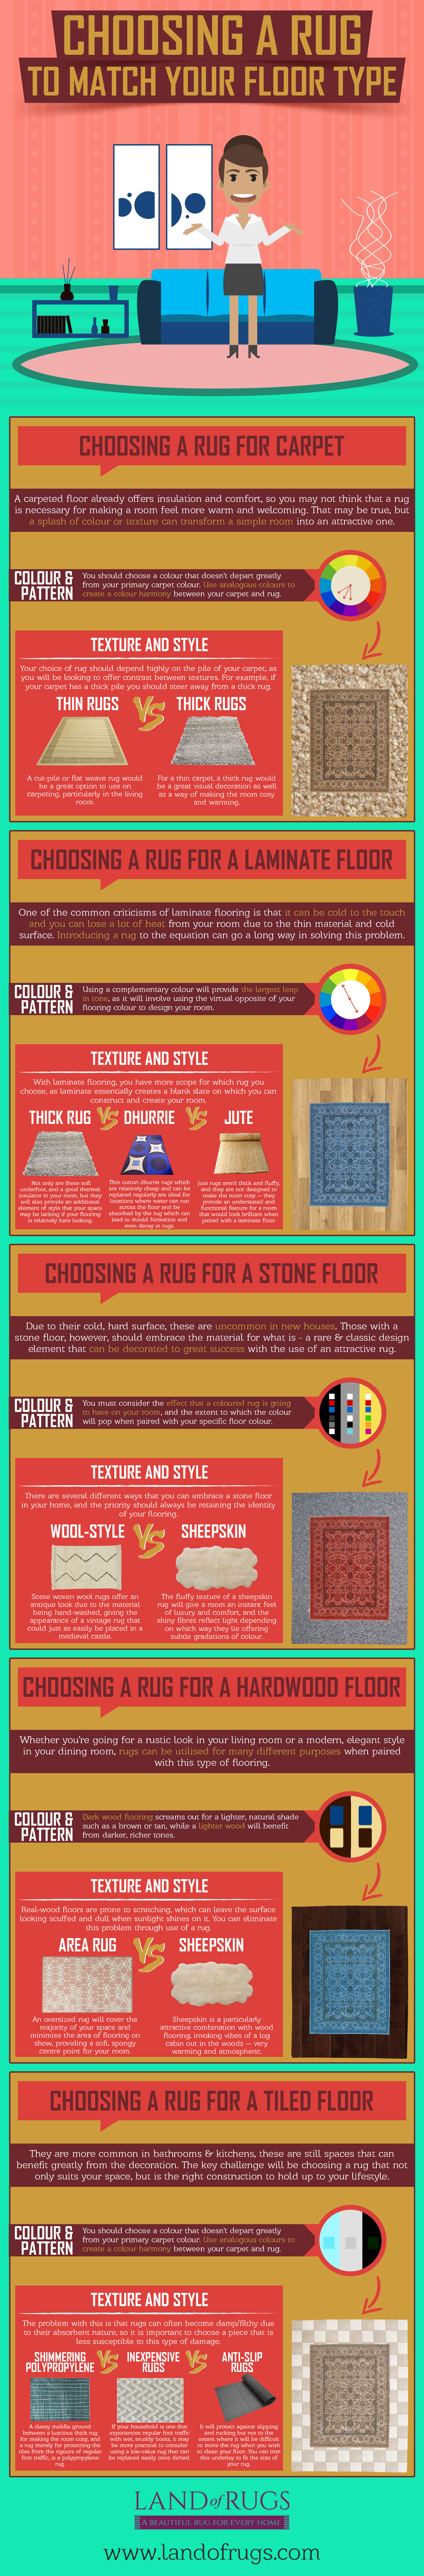 Choosing A Rug For Your Floor Type [Infographic]